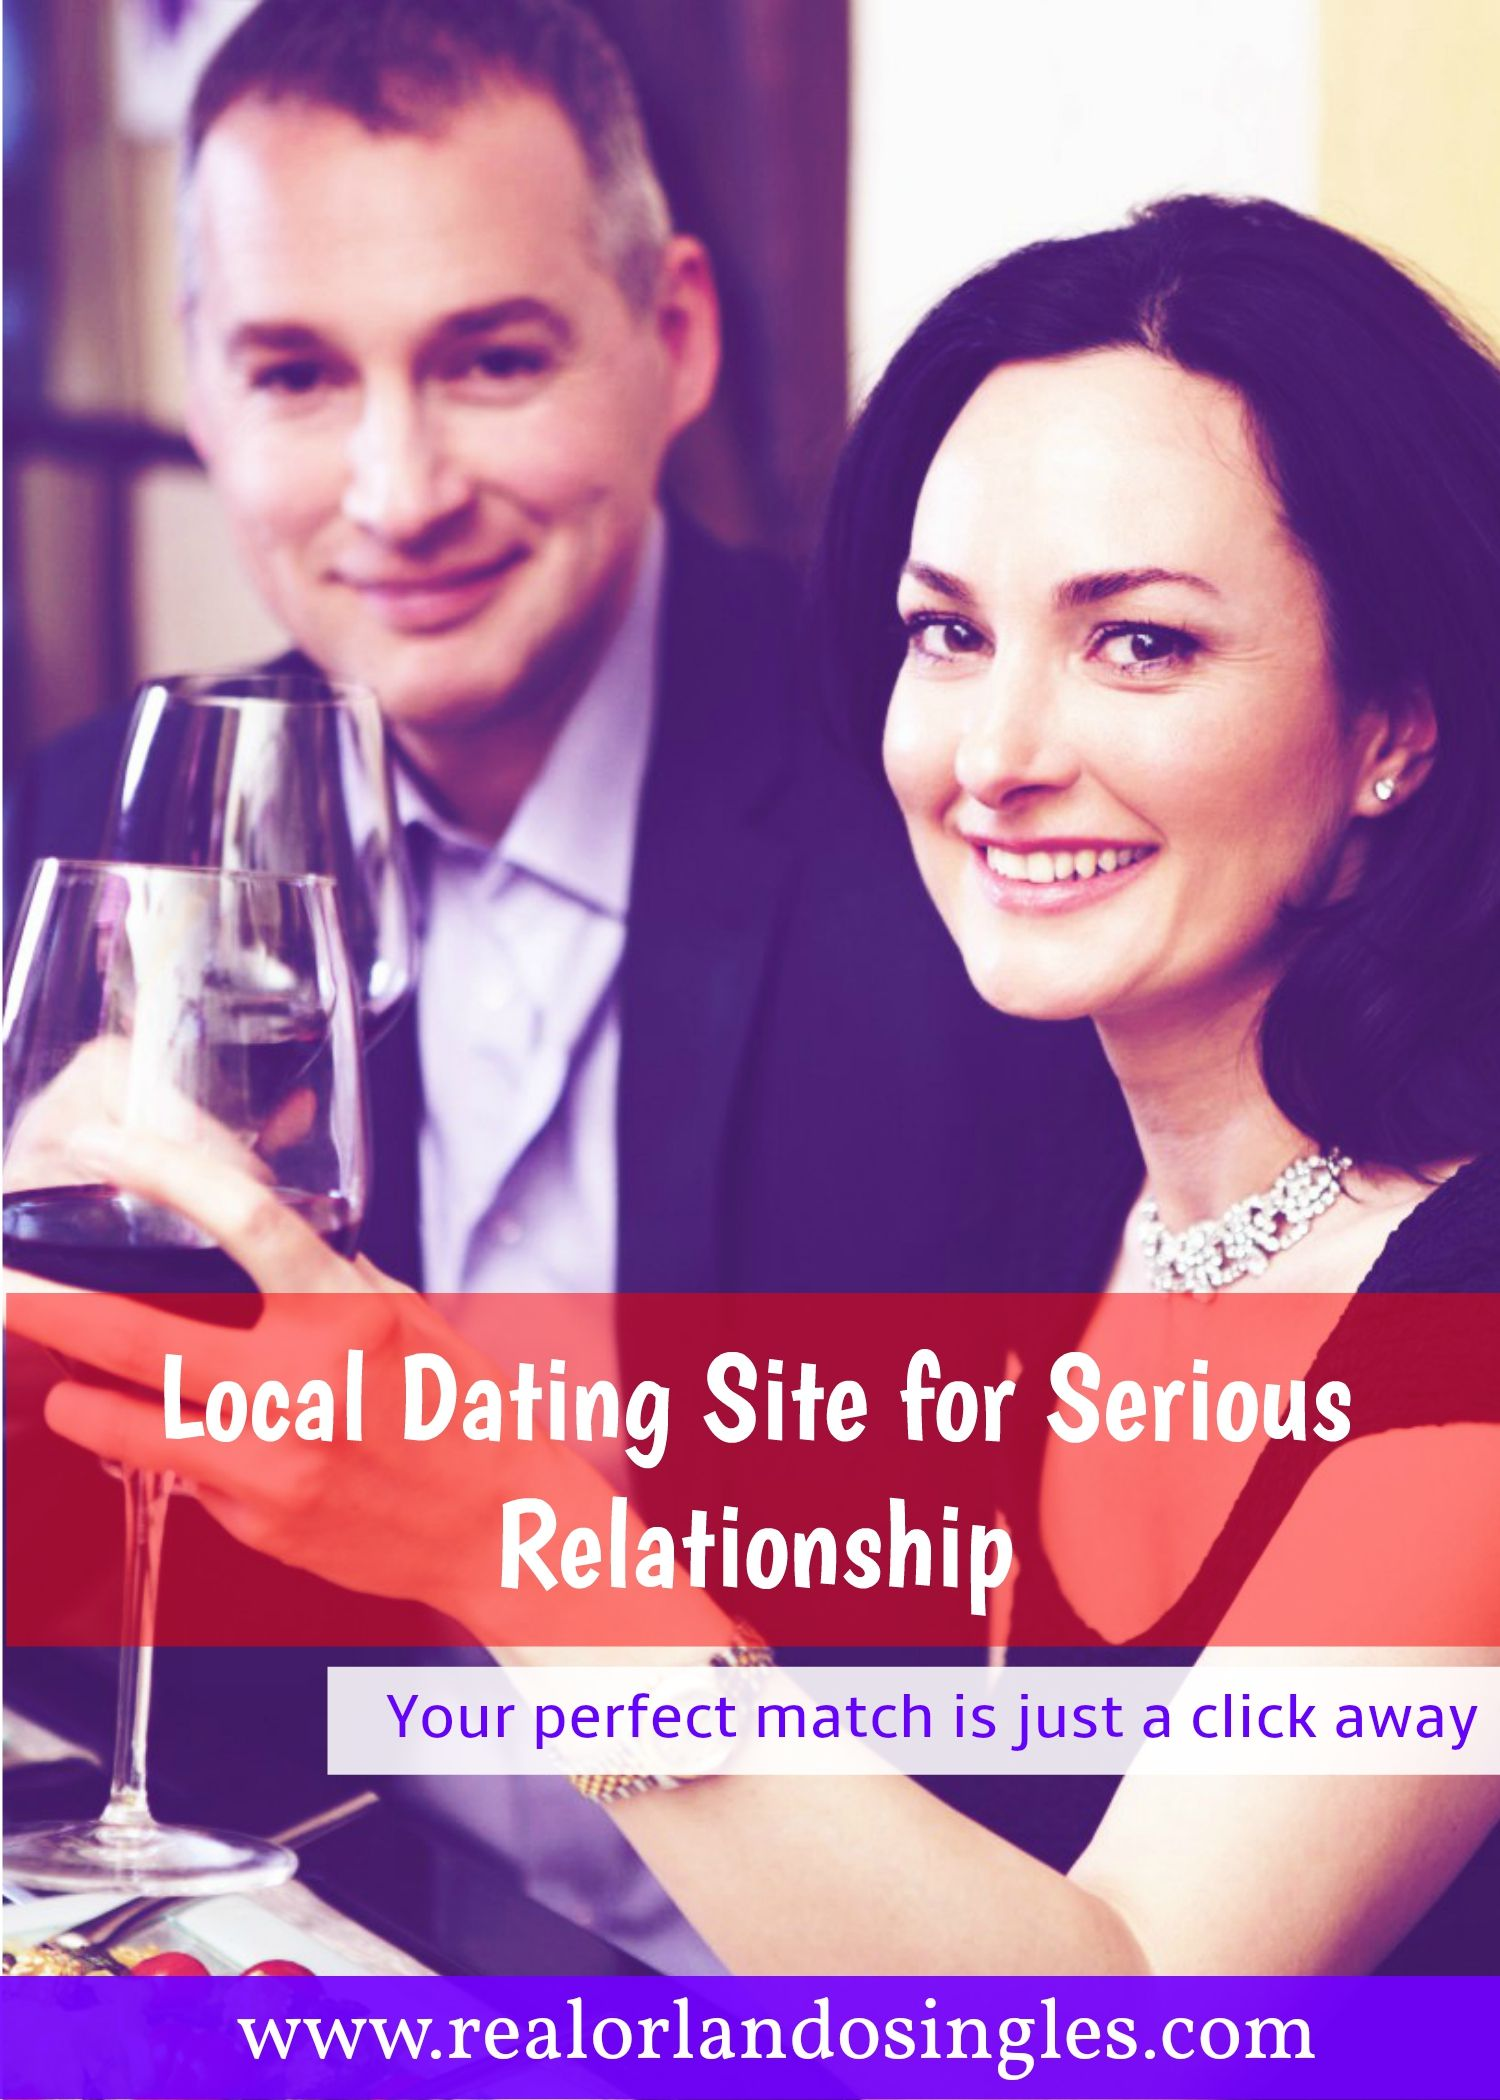 Dating relationship serious services